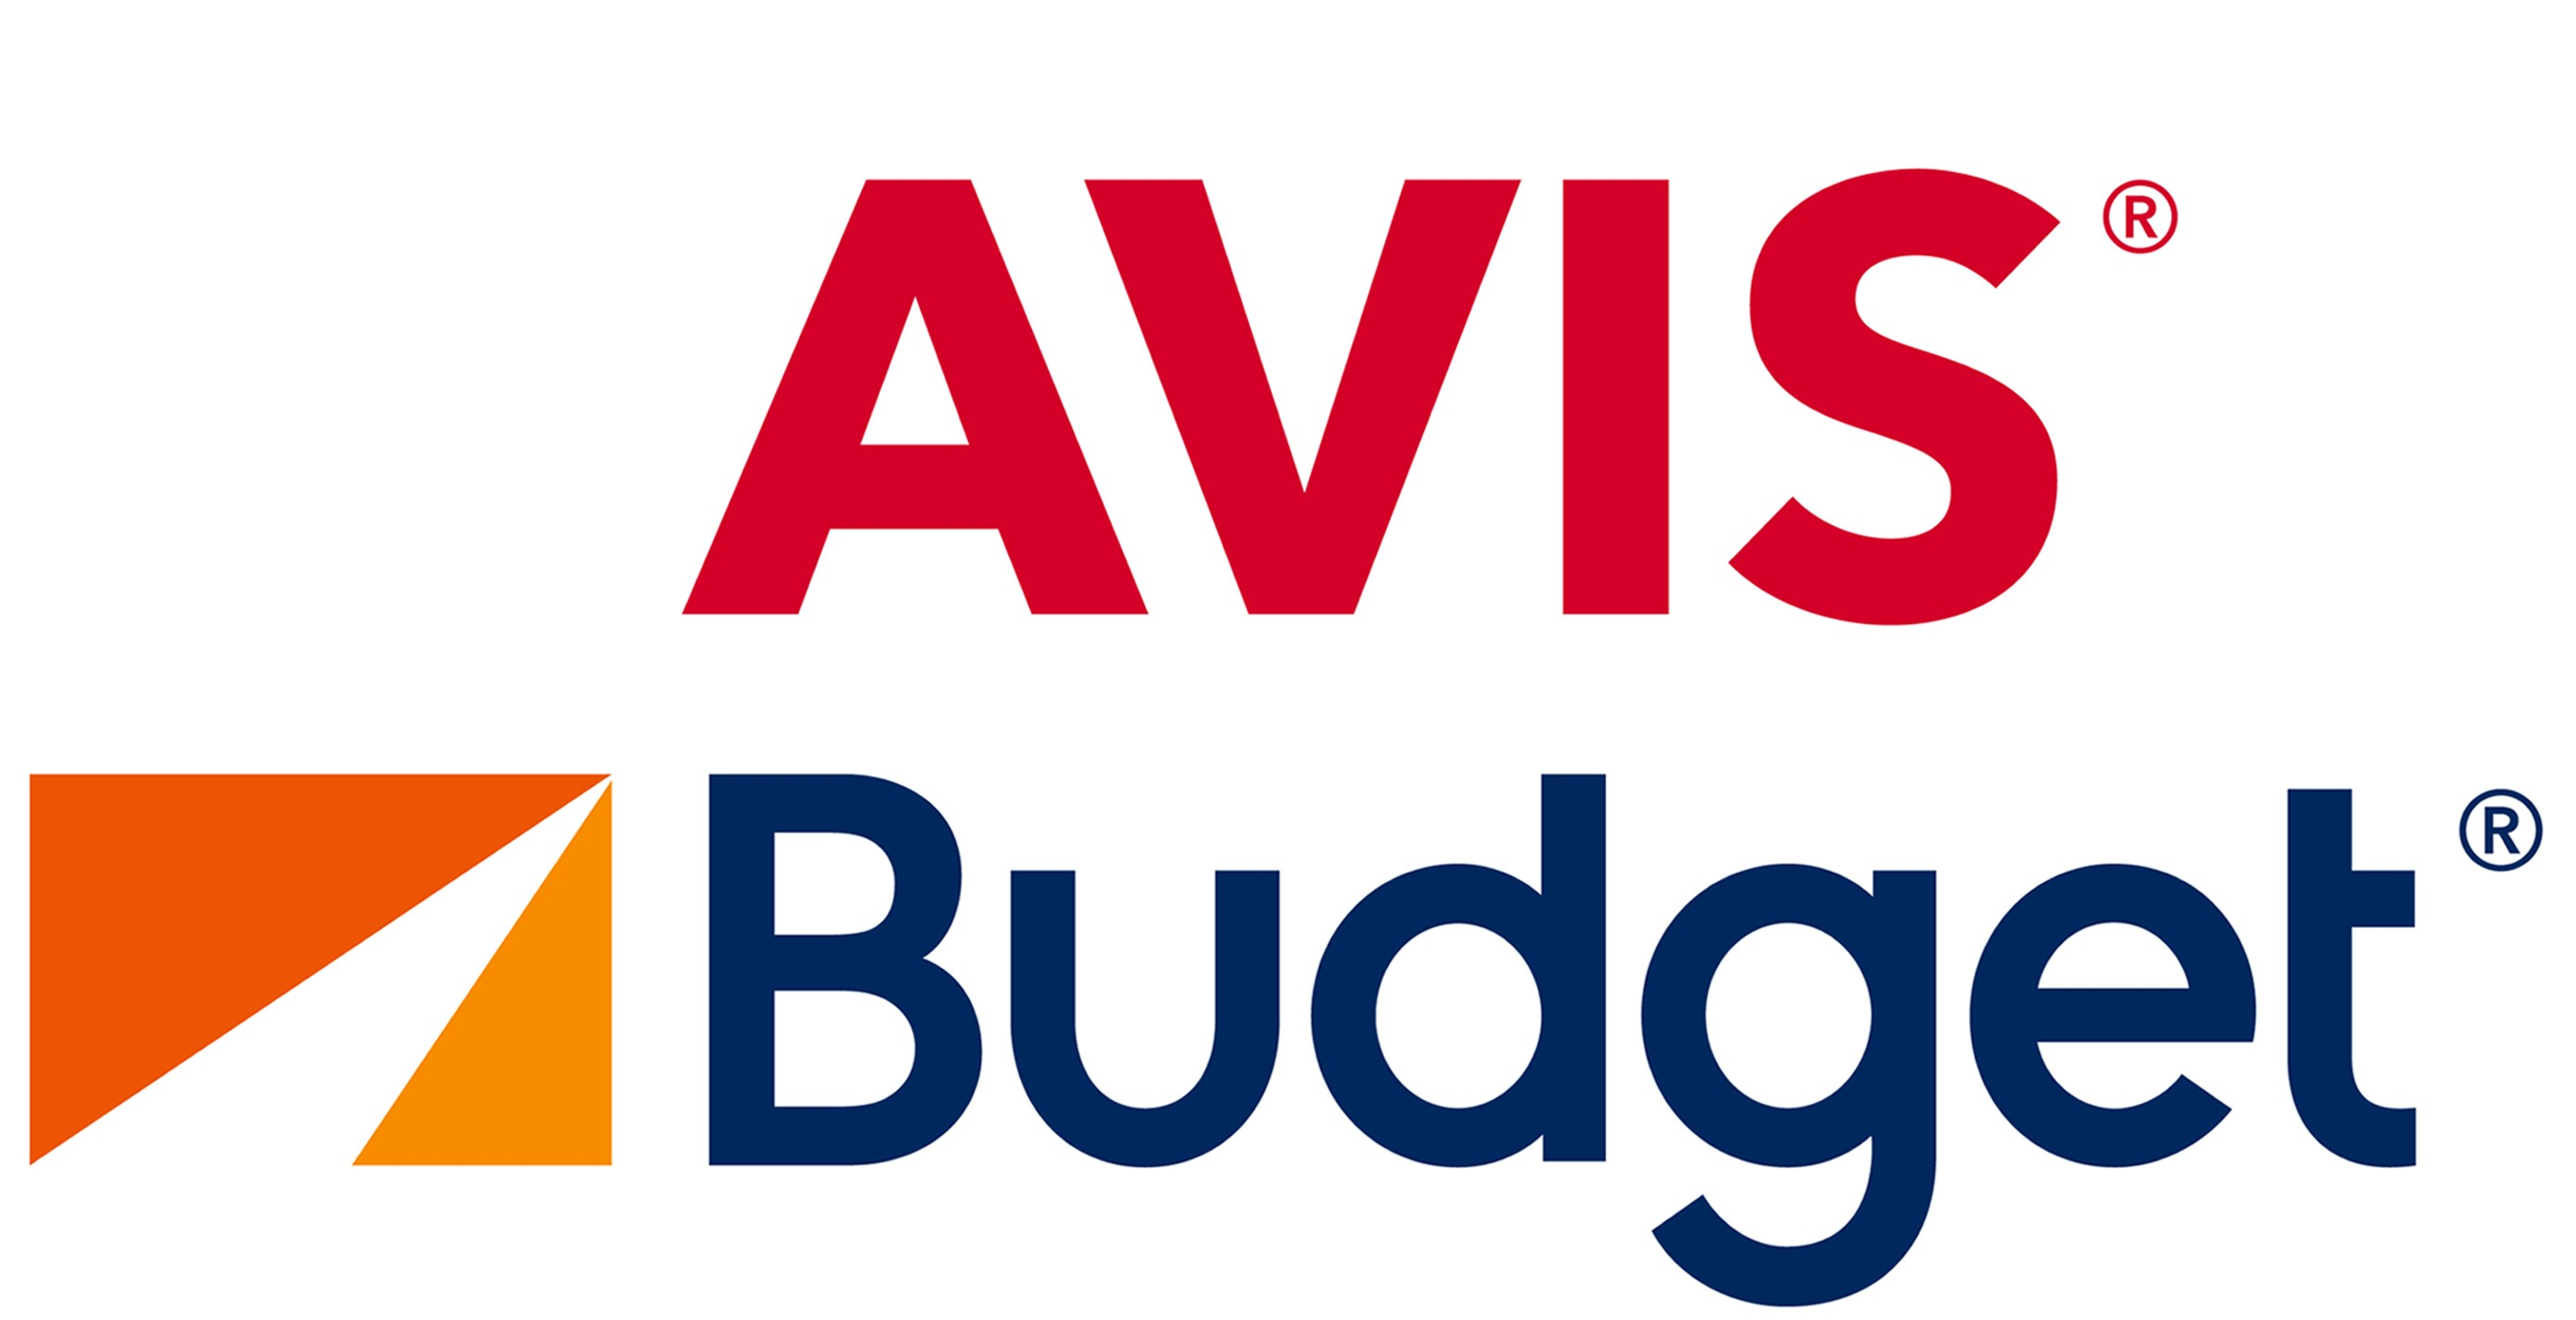 avis budget group why its demise is in sight avis budget group inc nasdaq car seeking alpha. Black Bedroom Furniture Sets. Home Design Ideas